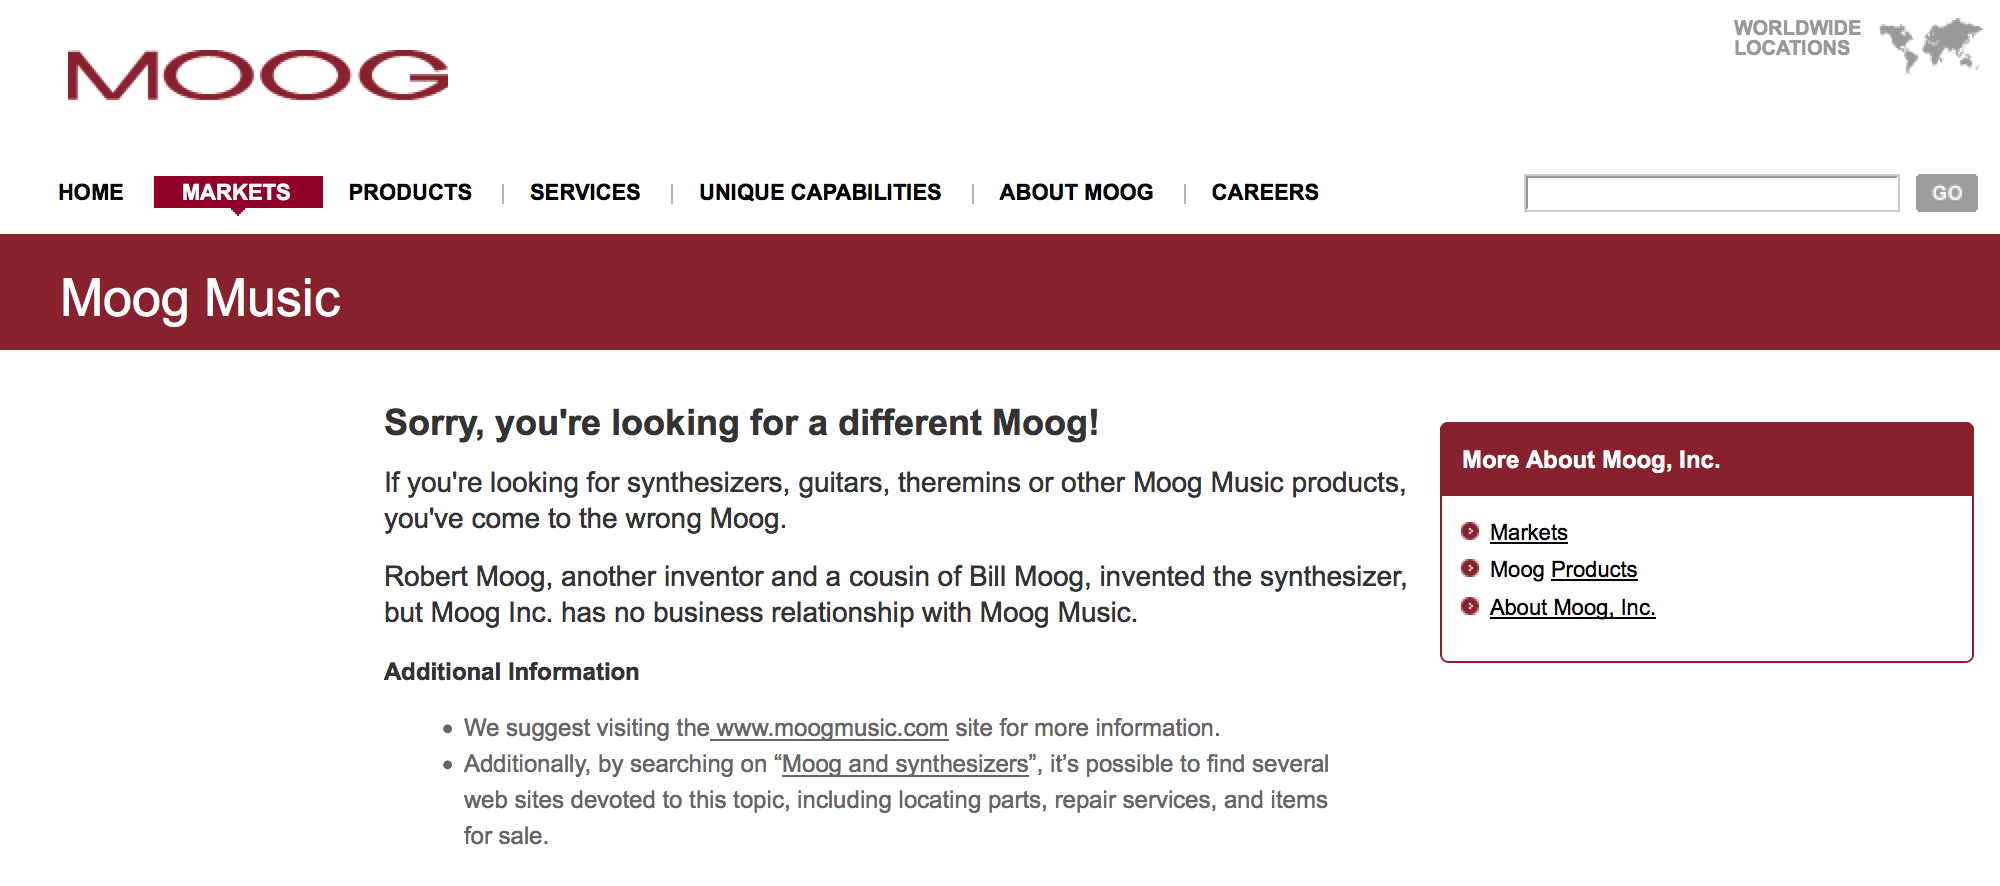 Sorry, you're looking for a different Moog!